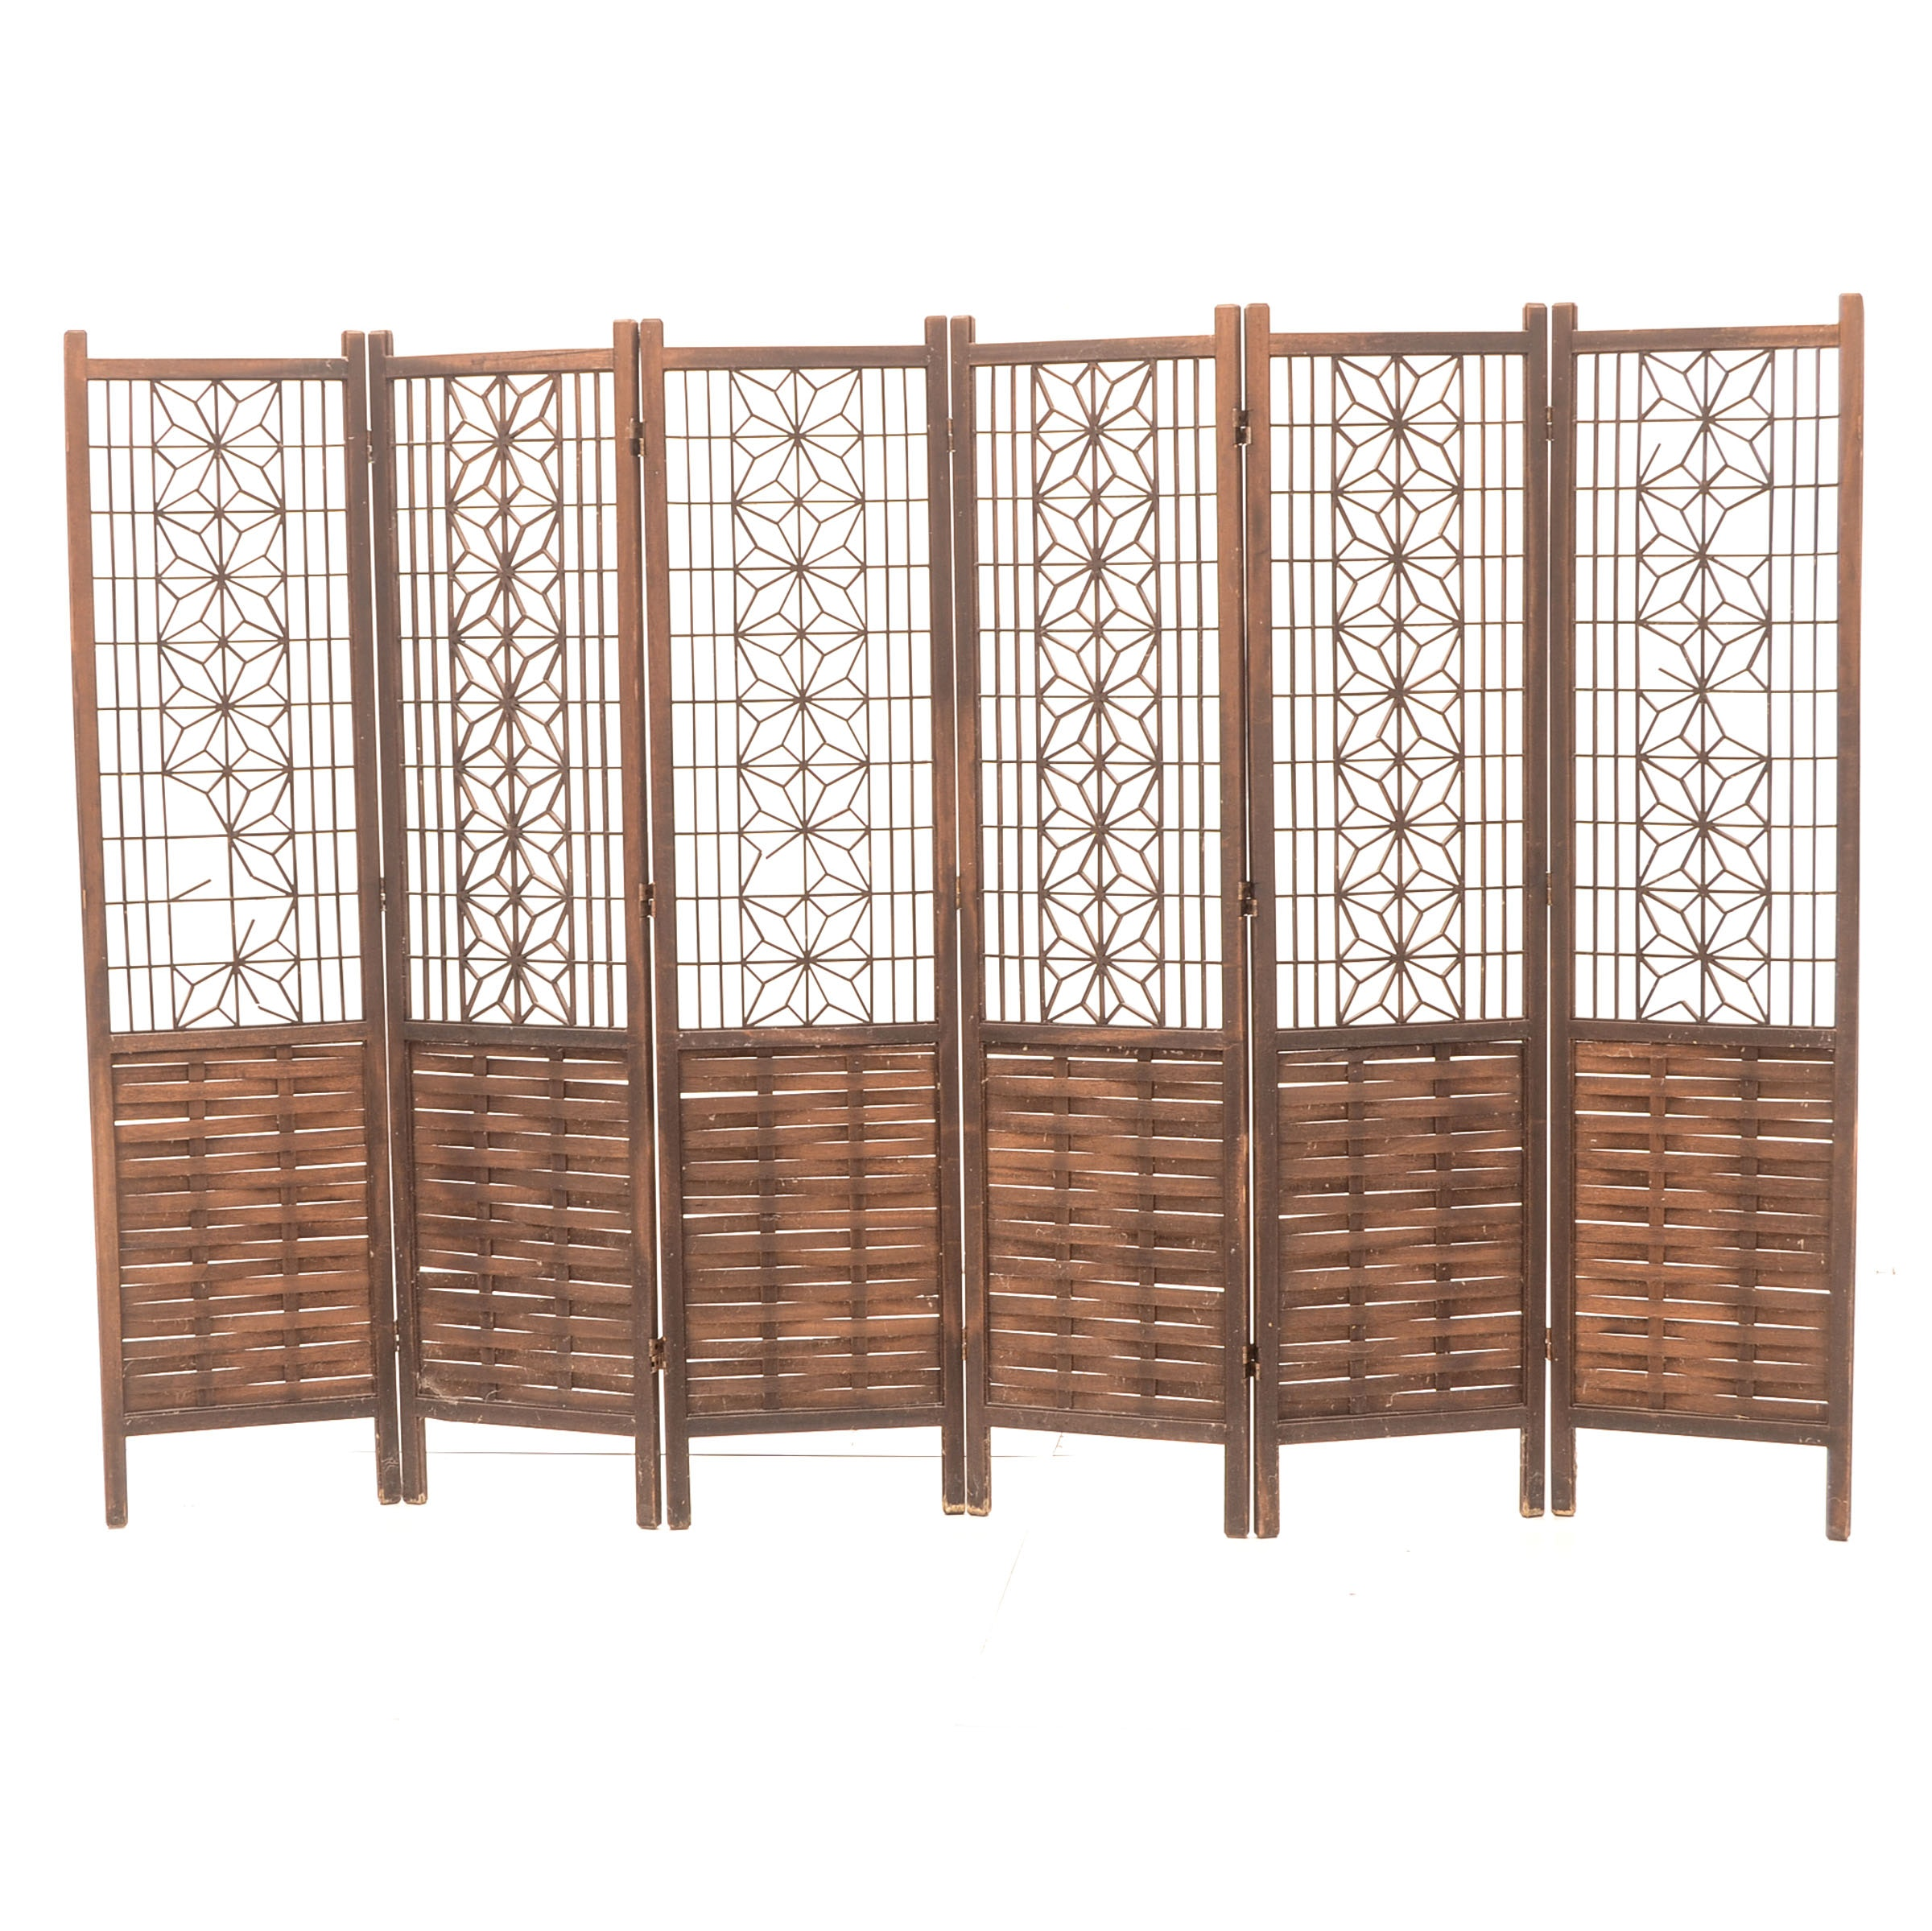 Six Panel Moroccan Style Fretwork Screen